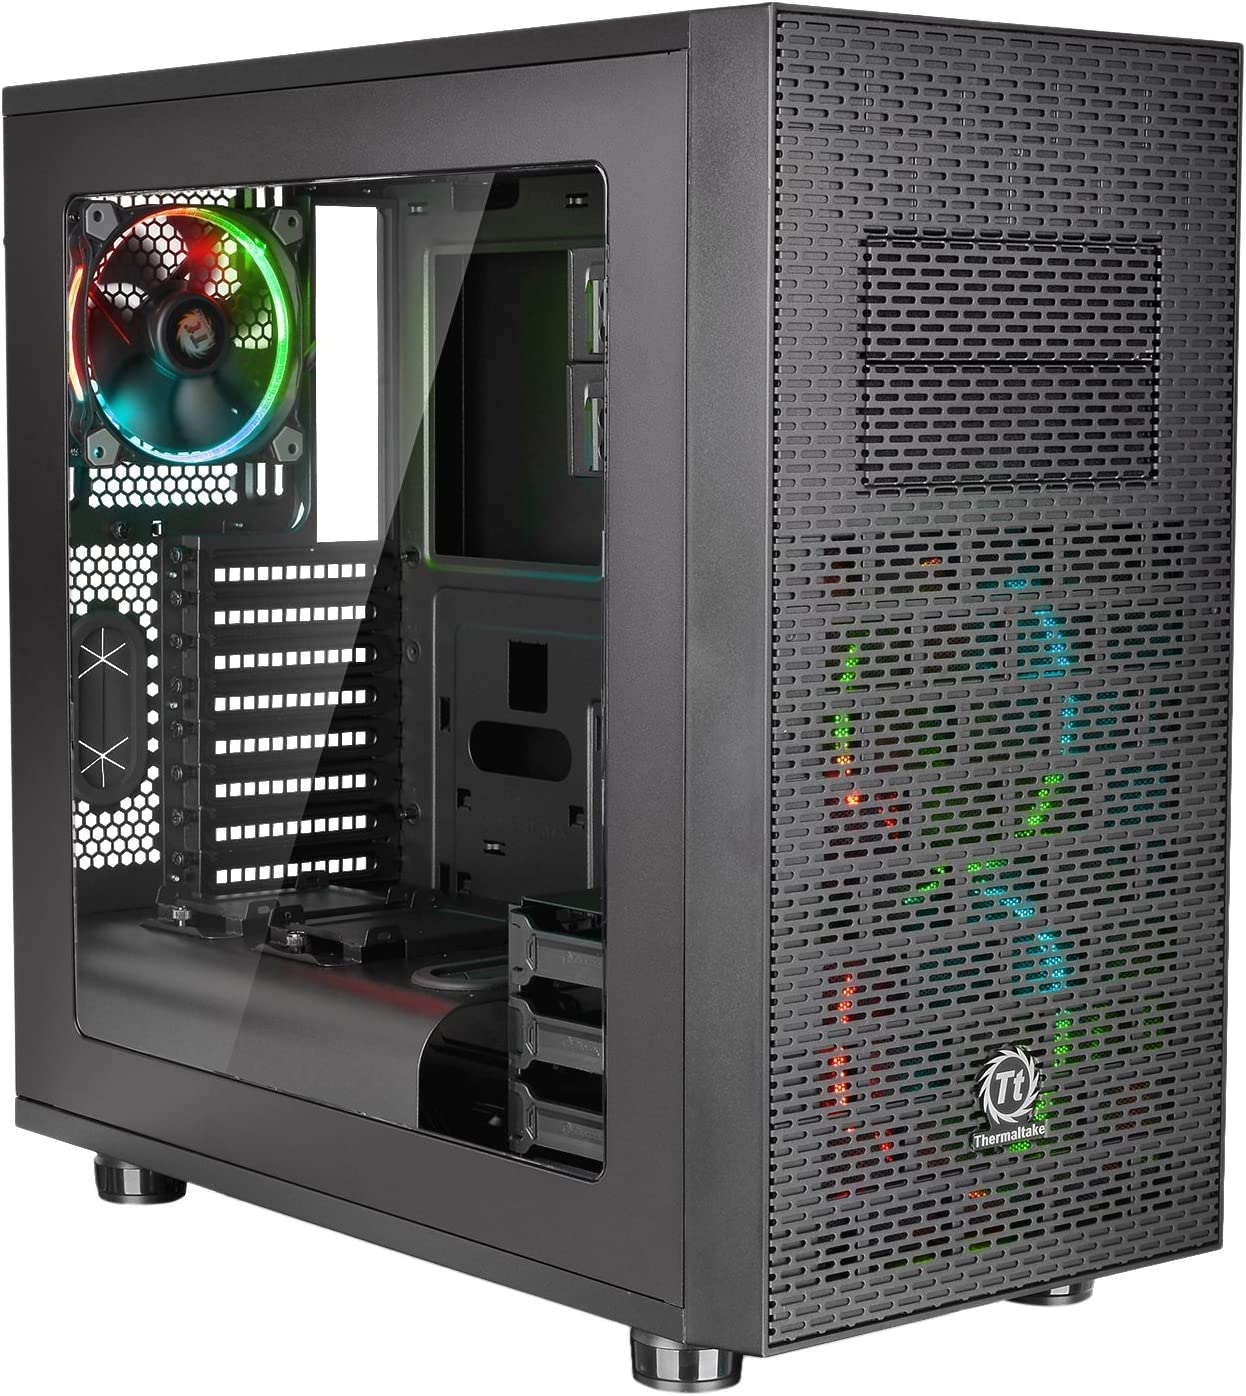 Thermaltake Core X31 RGB Edition Airflow pc case